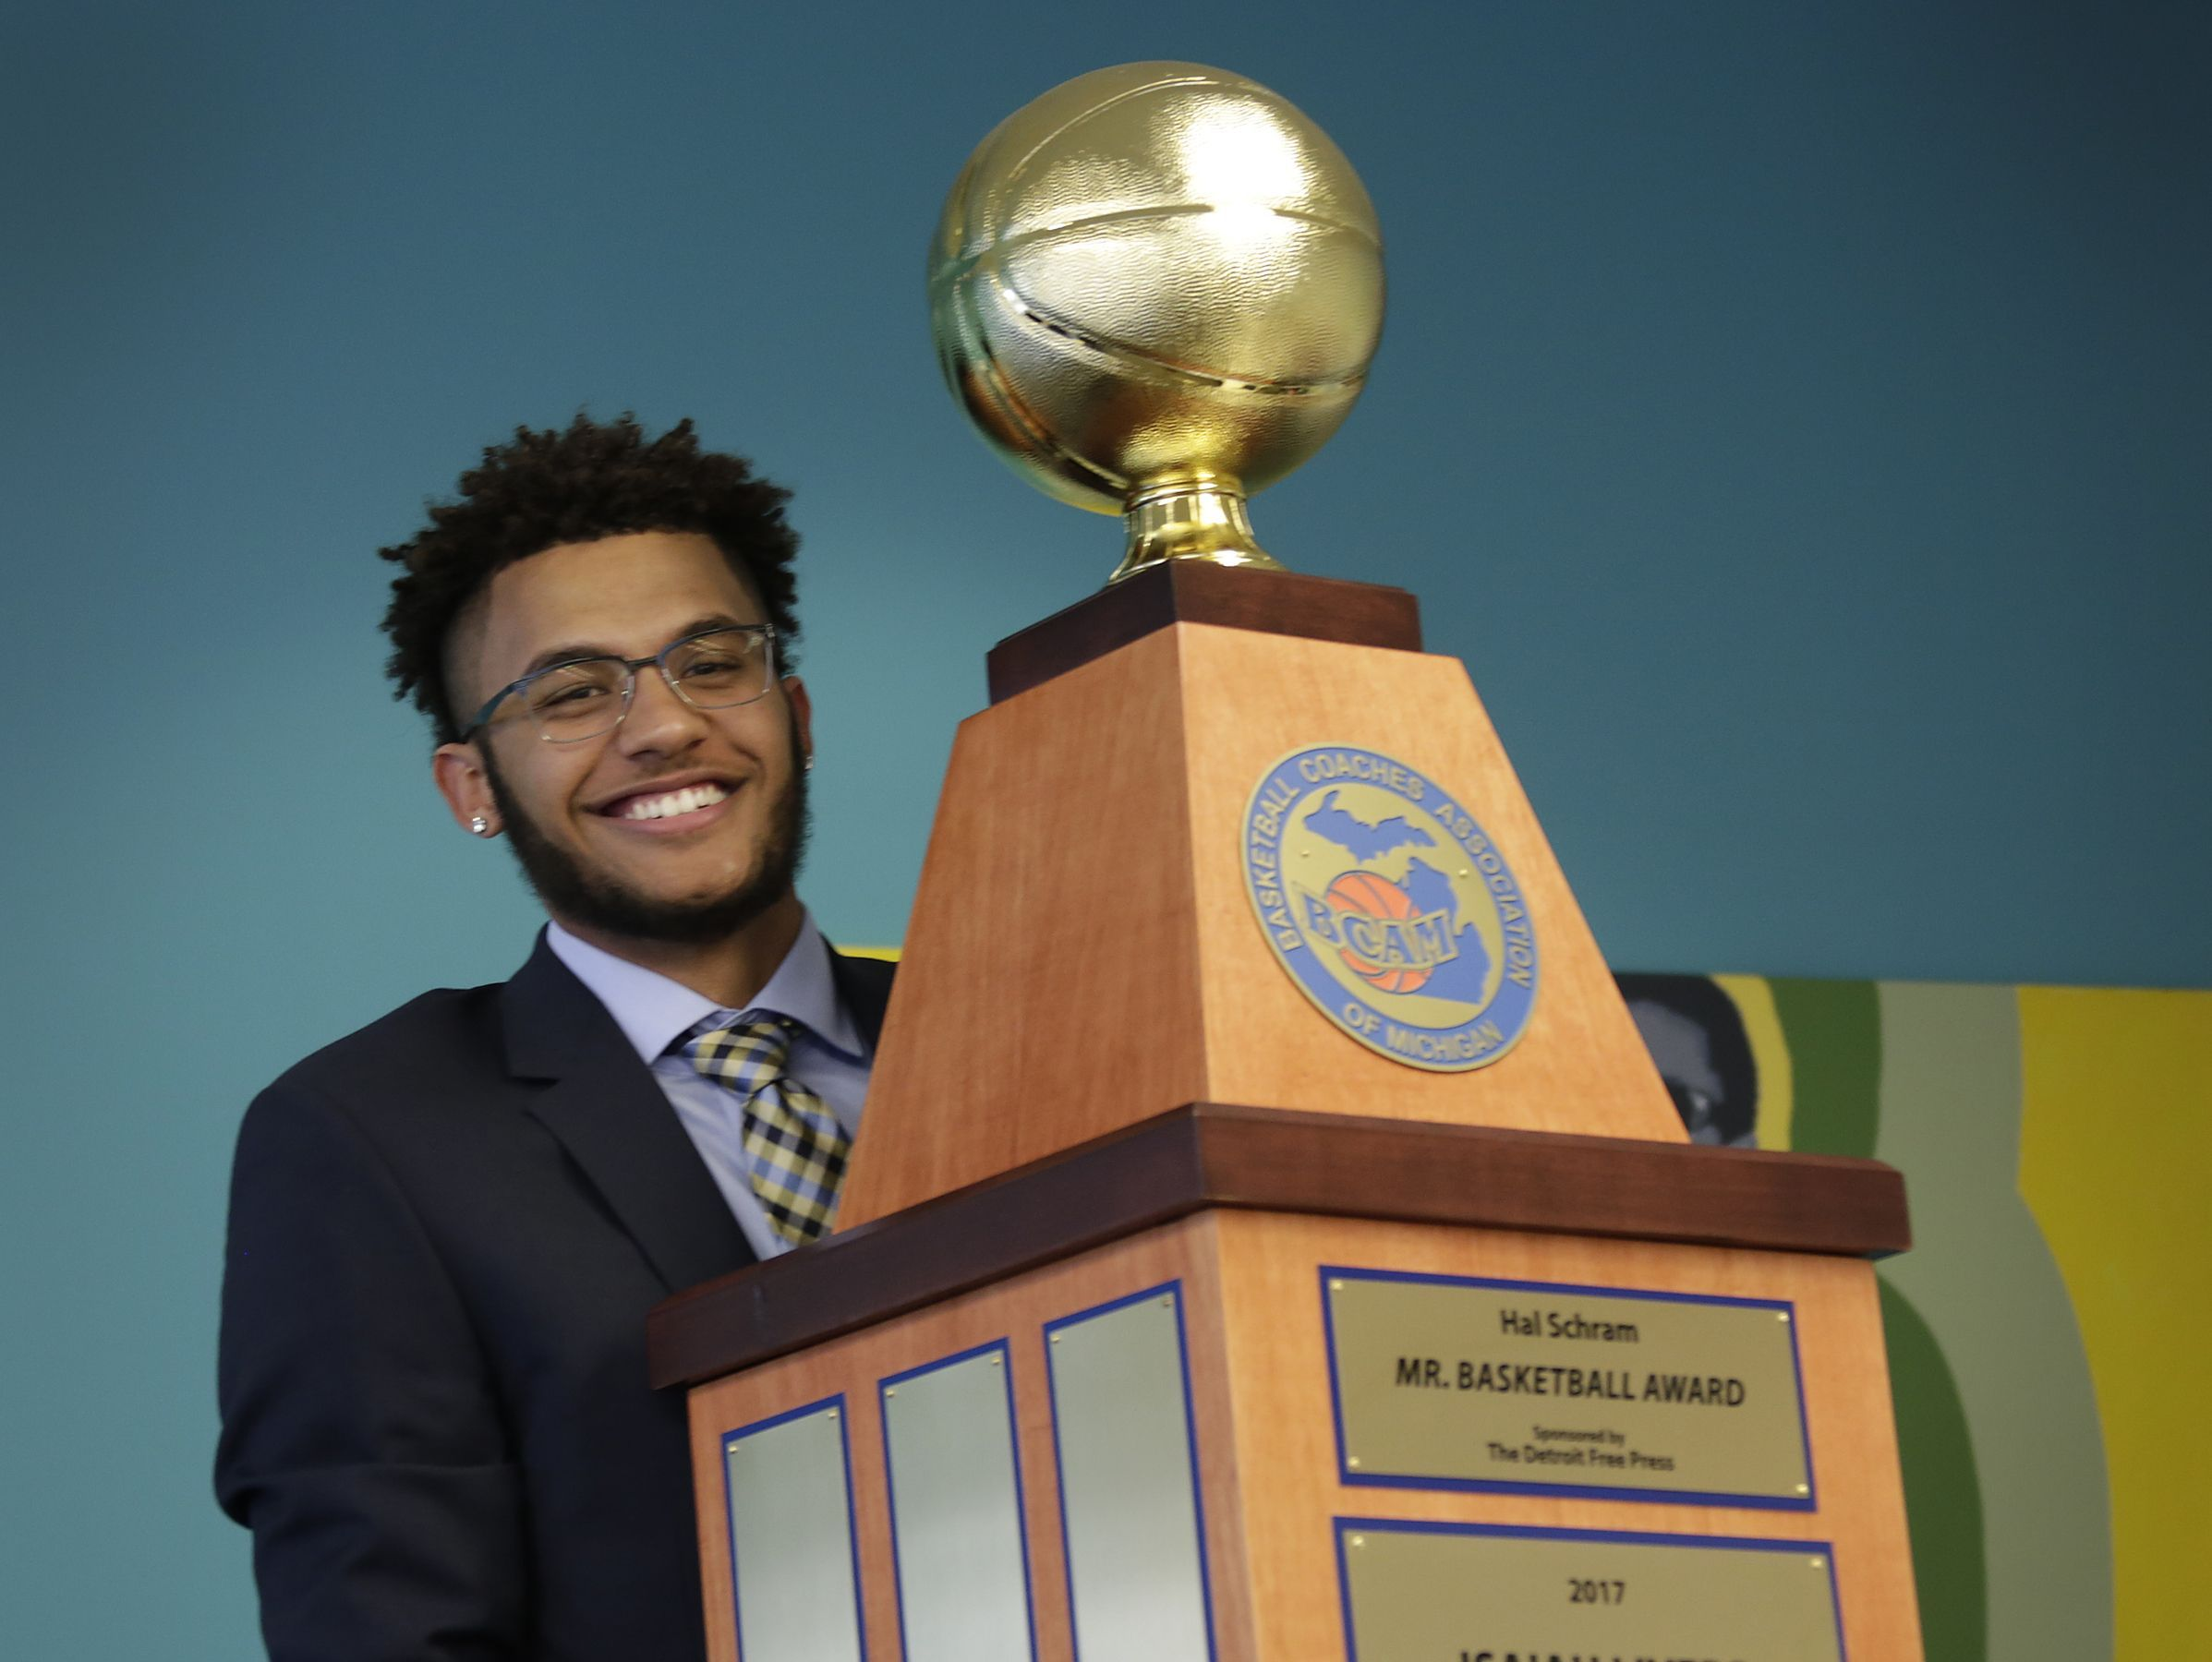 A look at every Michigan Mr. Basketball winner with their school of choice, starting with 2017: Isaiah Livers, Kalamazoo Central (Michigan).